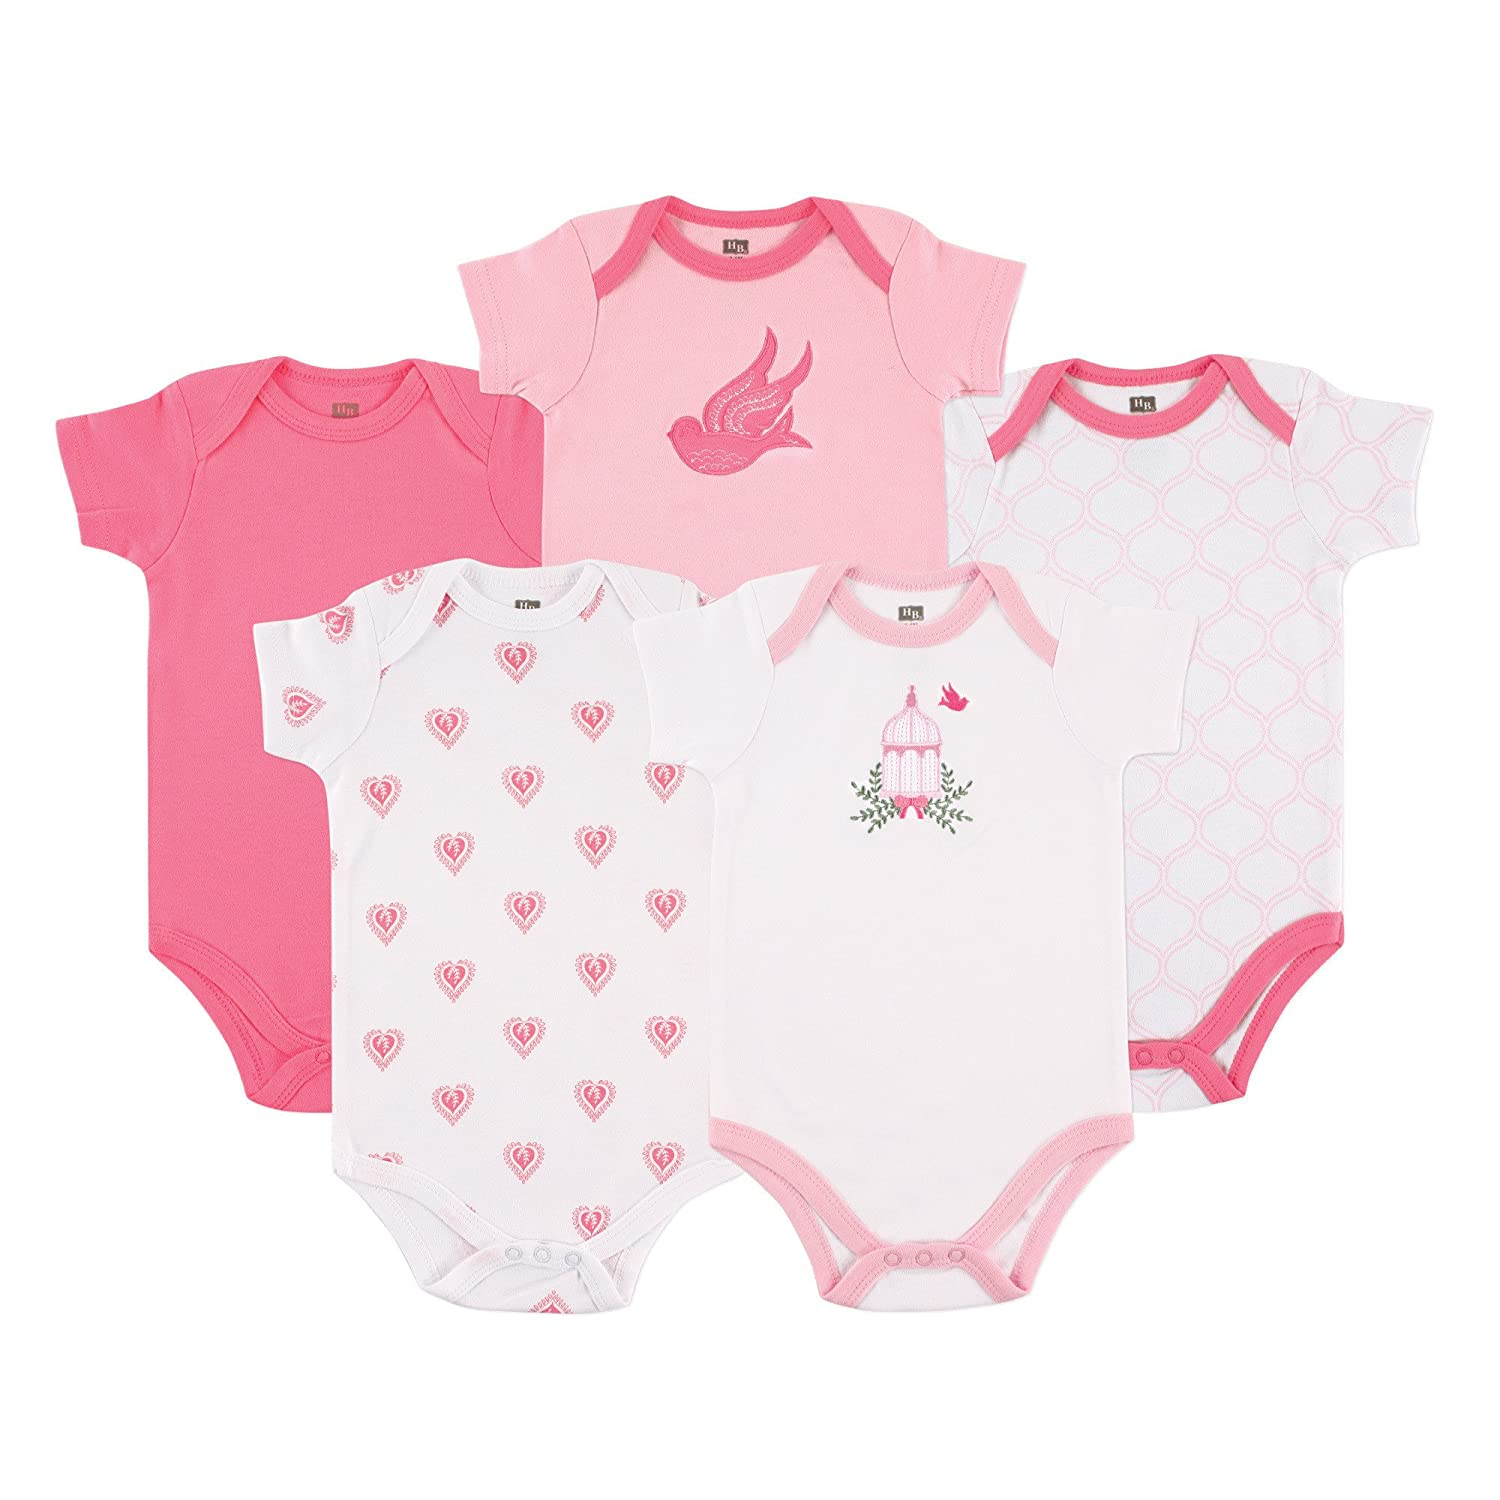 Hudson Baby Cotton Bodysuits, 10151444